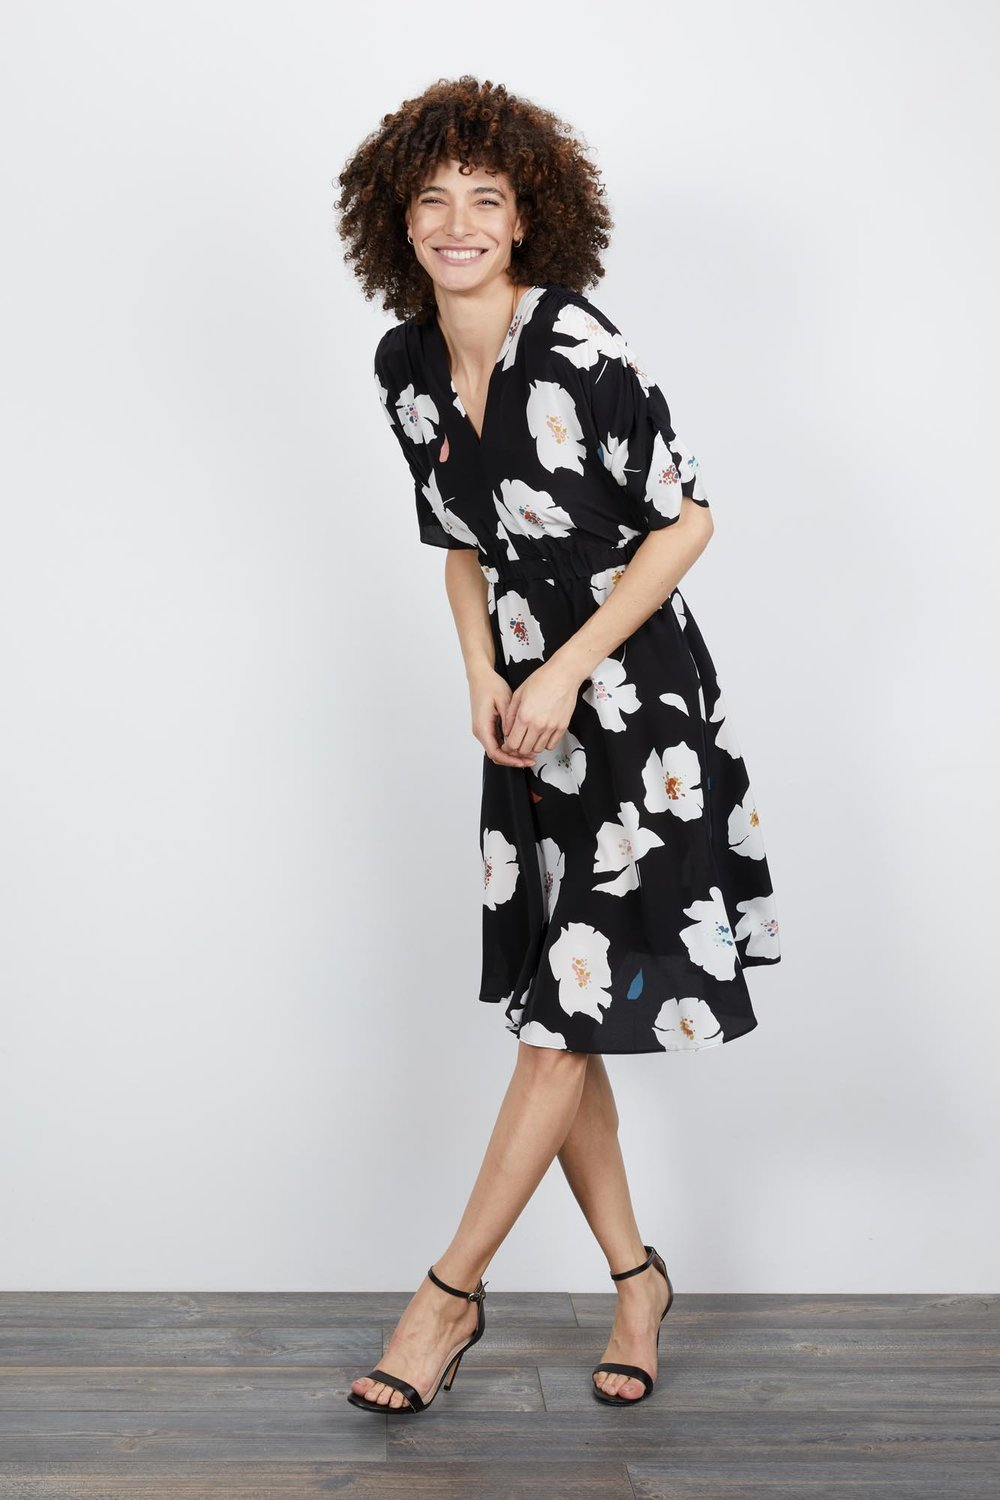 Tucker Shadow Flower Market Dress - Tucker is a new brand on my radar. They're on the pricier side, but the materials and fit appear to be top-notch (I've never purchased anything from them, so reviews are welcome!). This dress is 100% crepe-de-chine and made in Tucker's own factories, which allows them to monitor working conditions, pay all of their staff a living wage, reduce waste and over-production, and generally work toward more sustainable manufacturing.